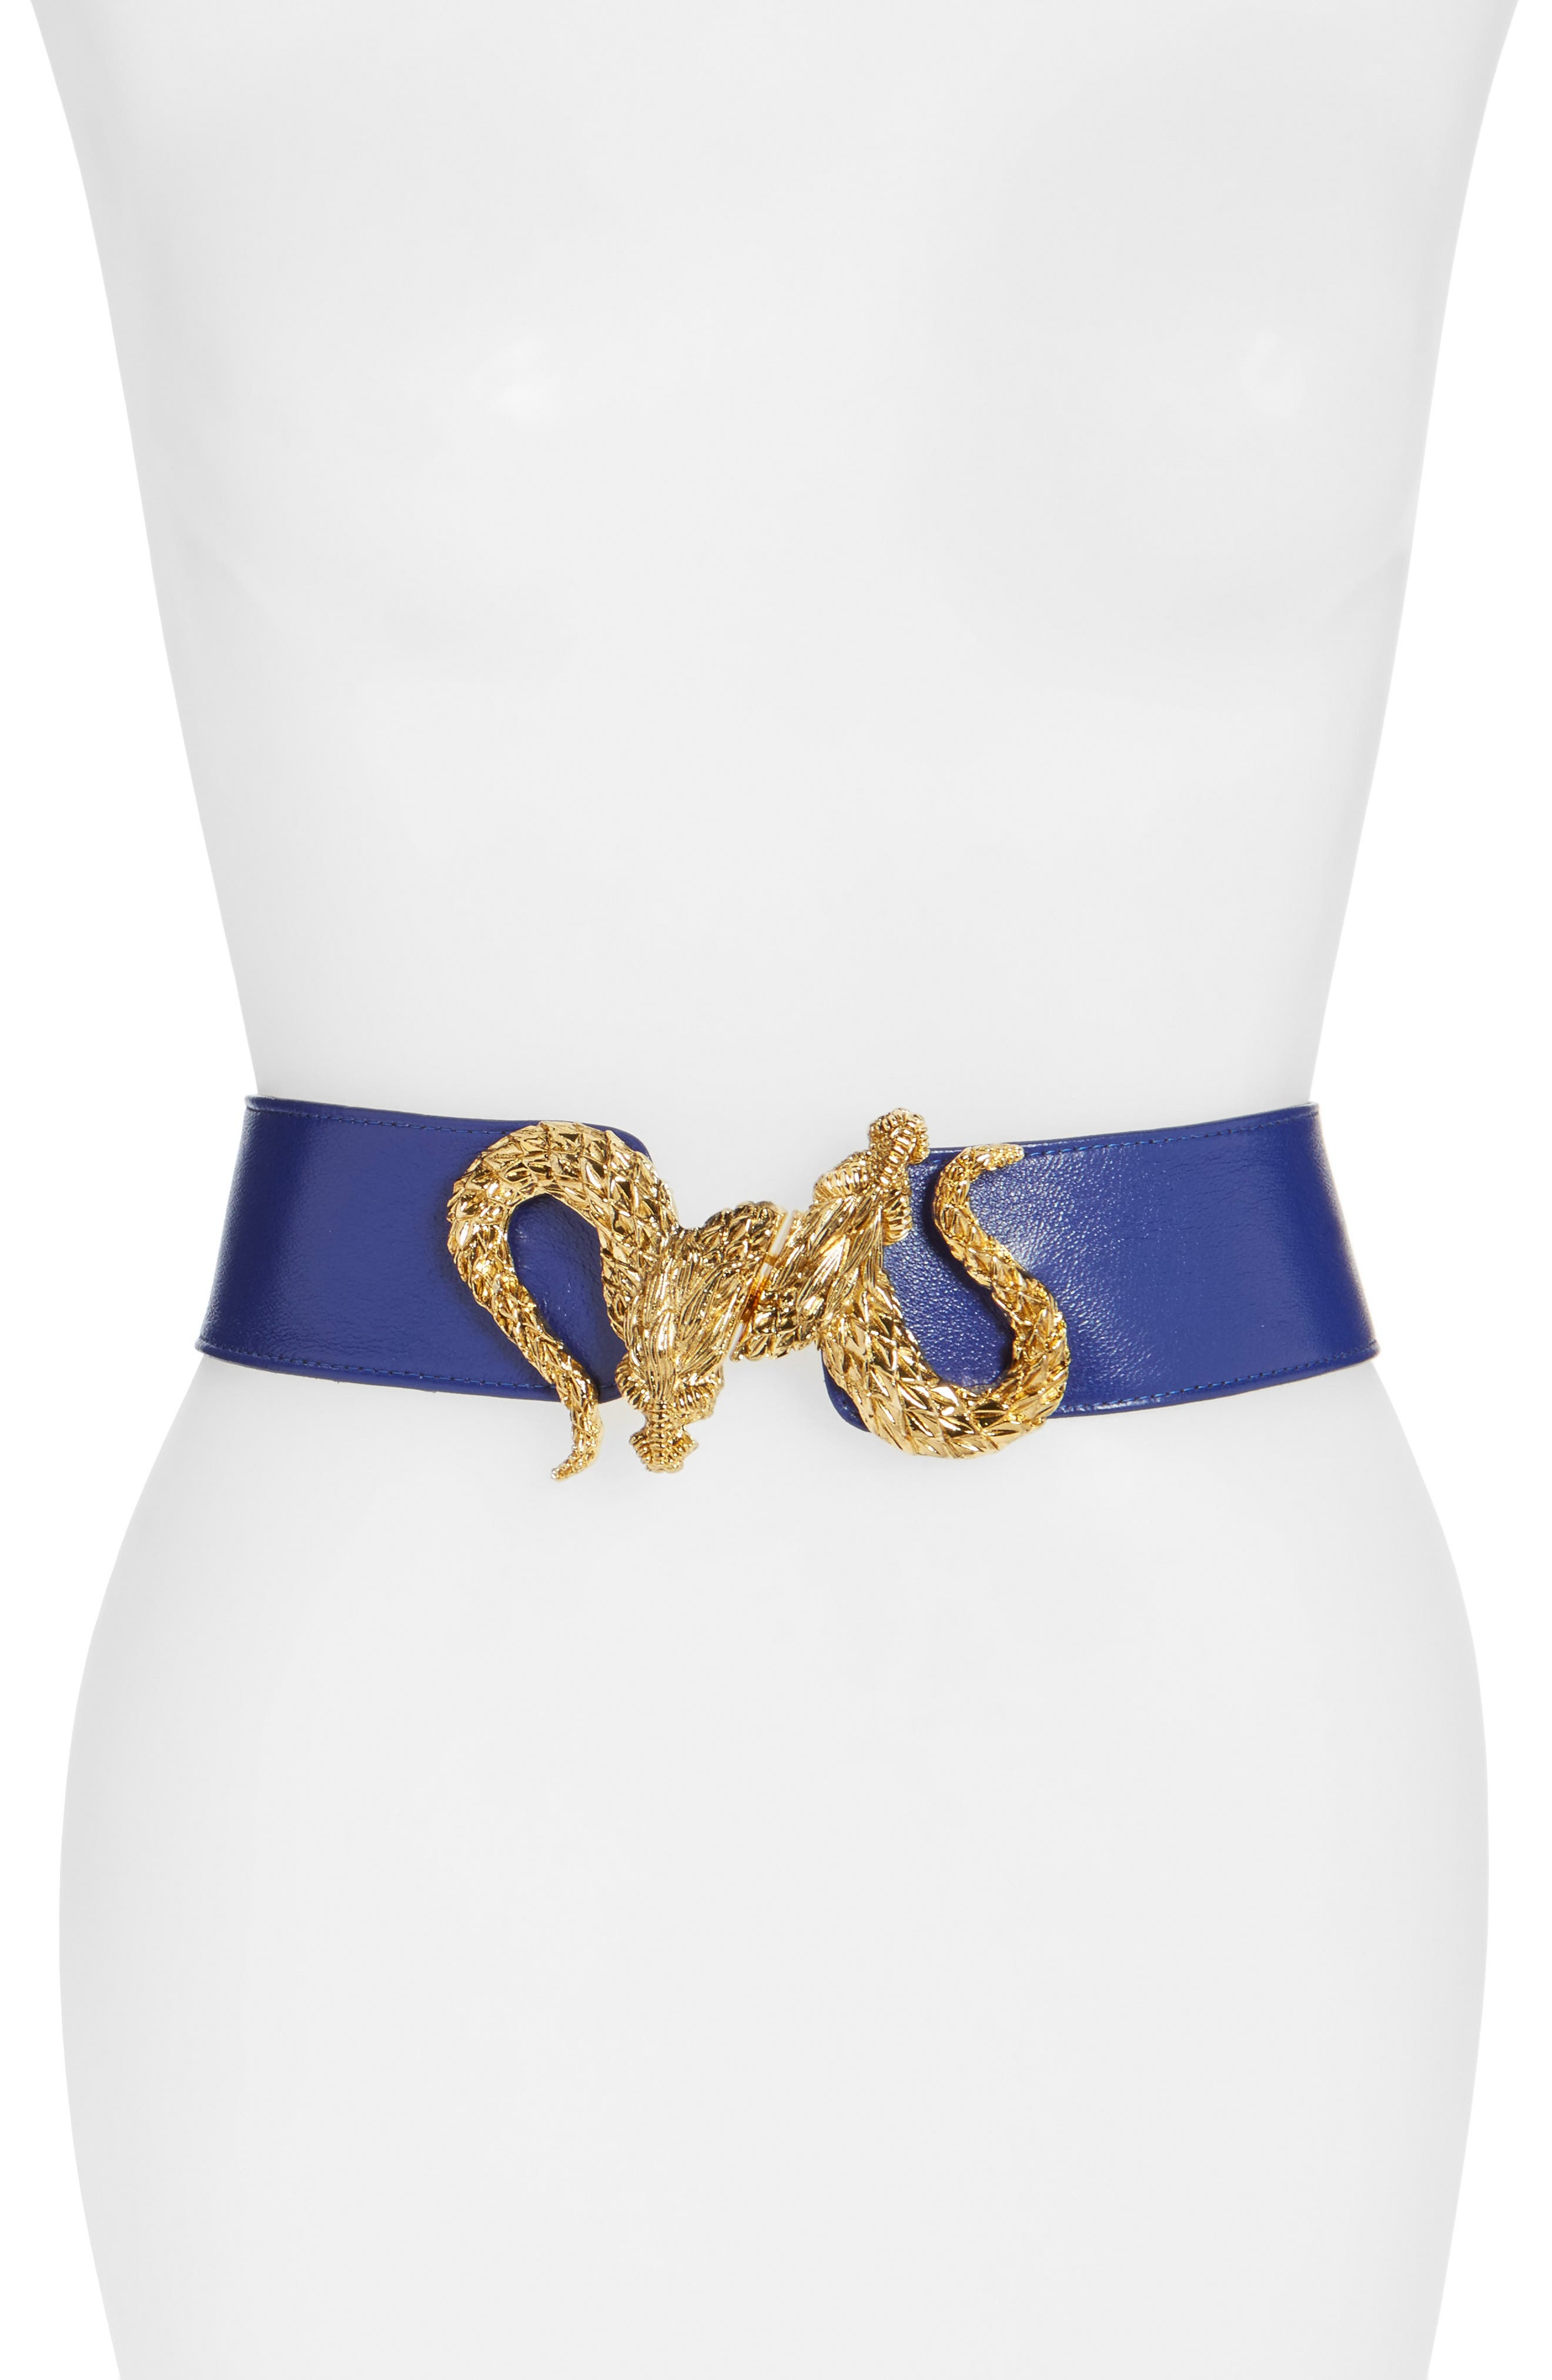 'Penelope - Dragon' Stretch Belt,                             Main thumbnail 1, color,                             Blue